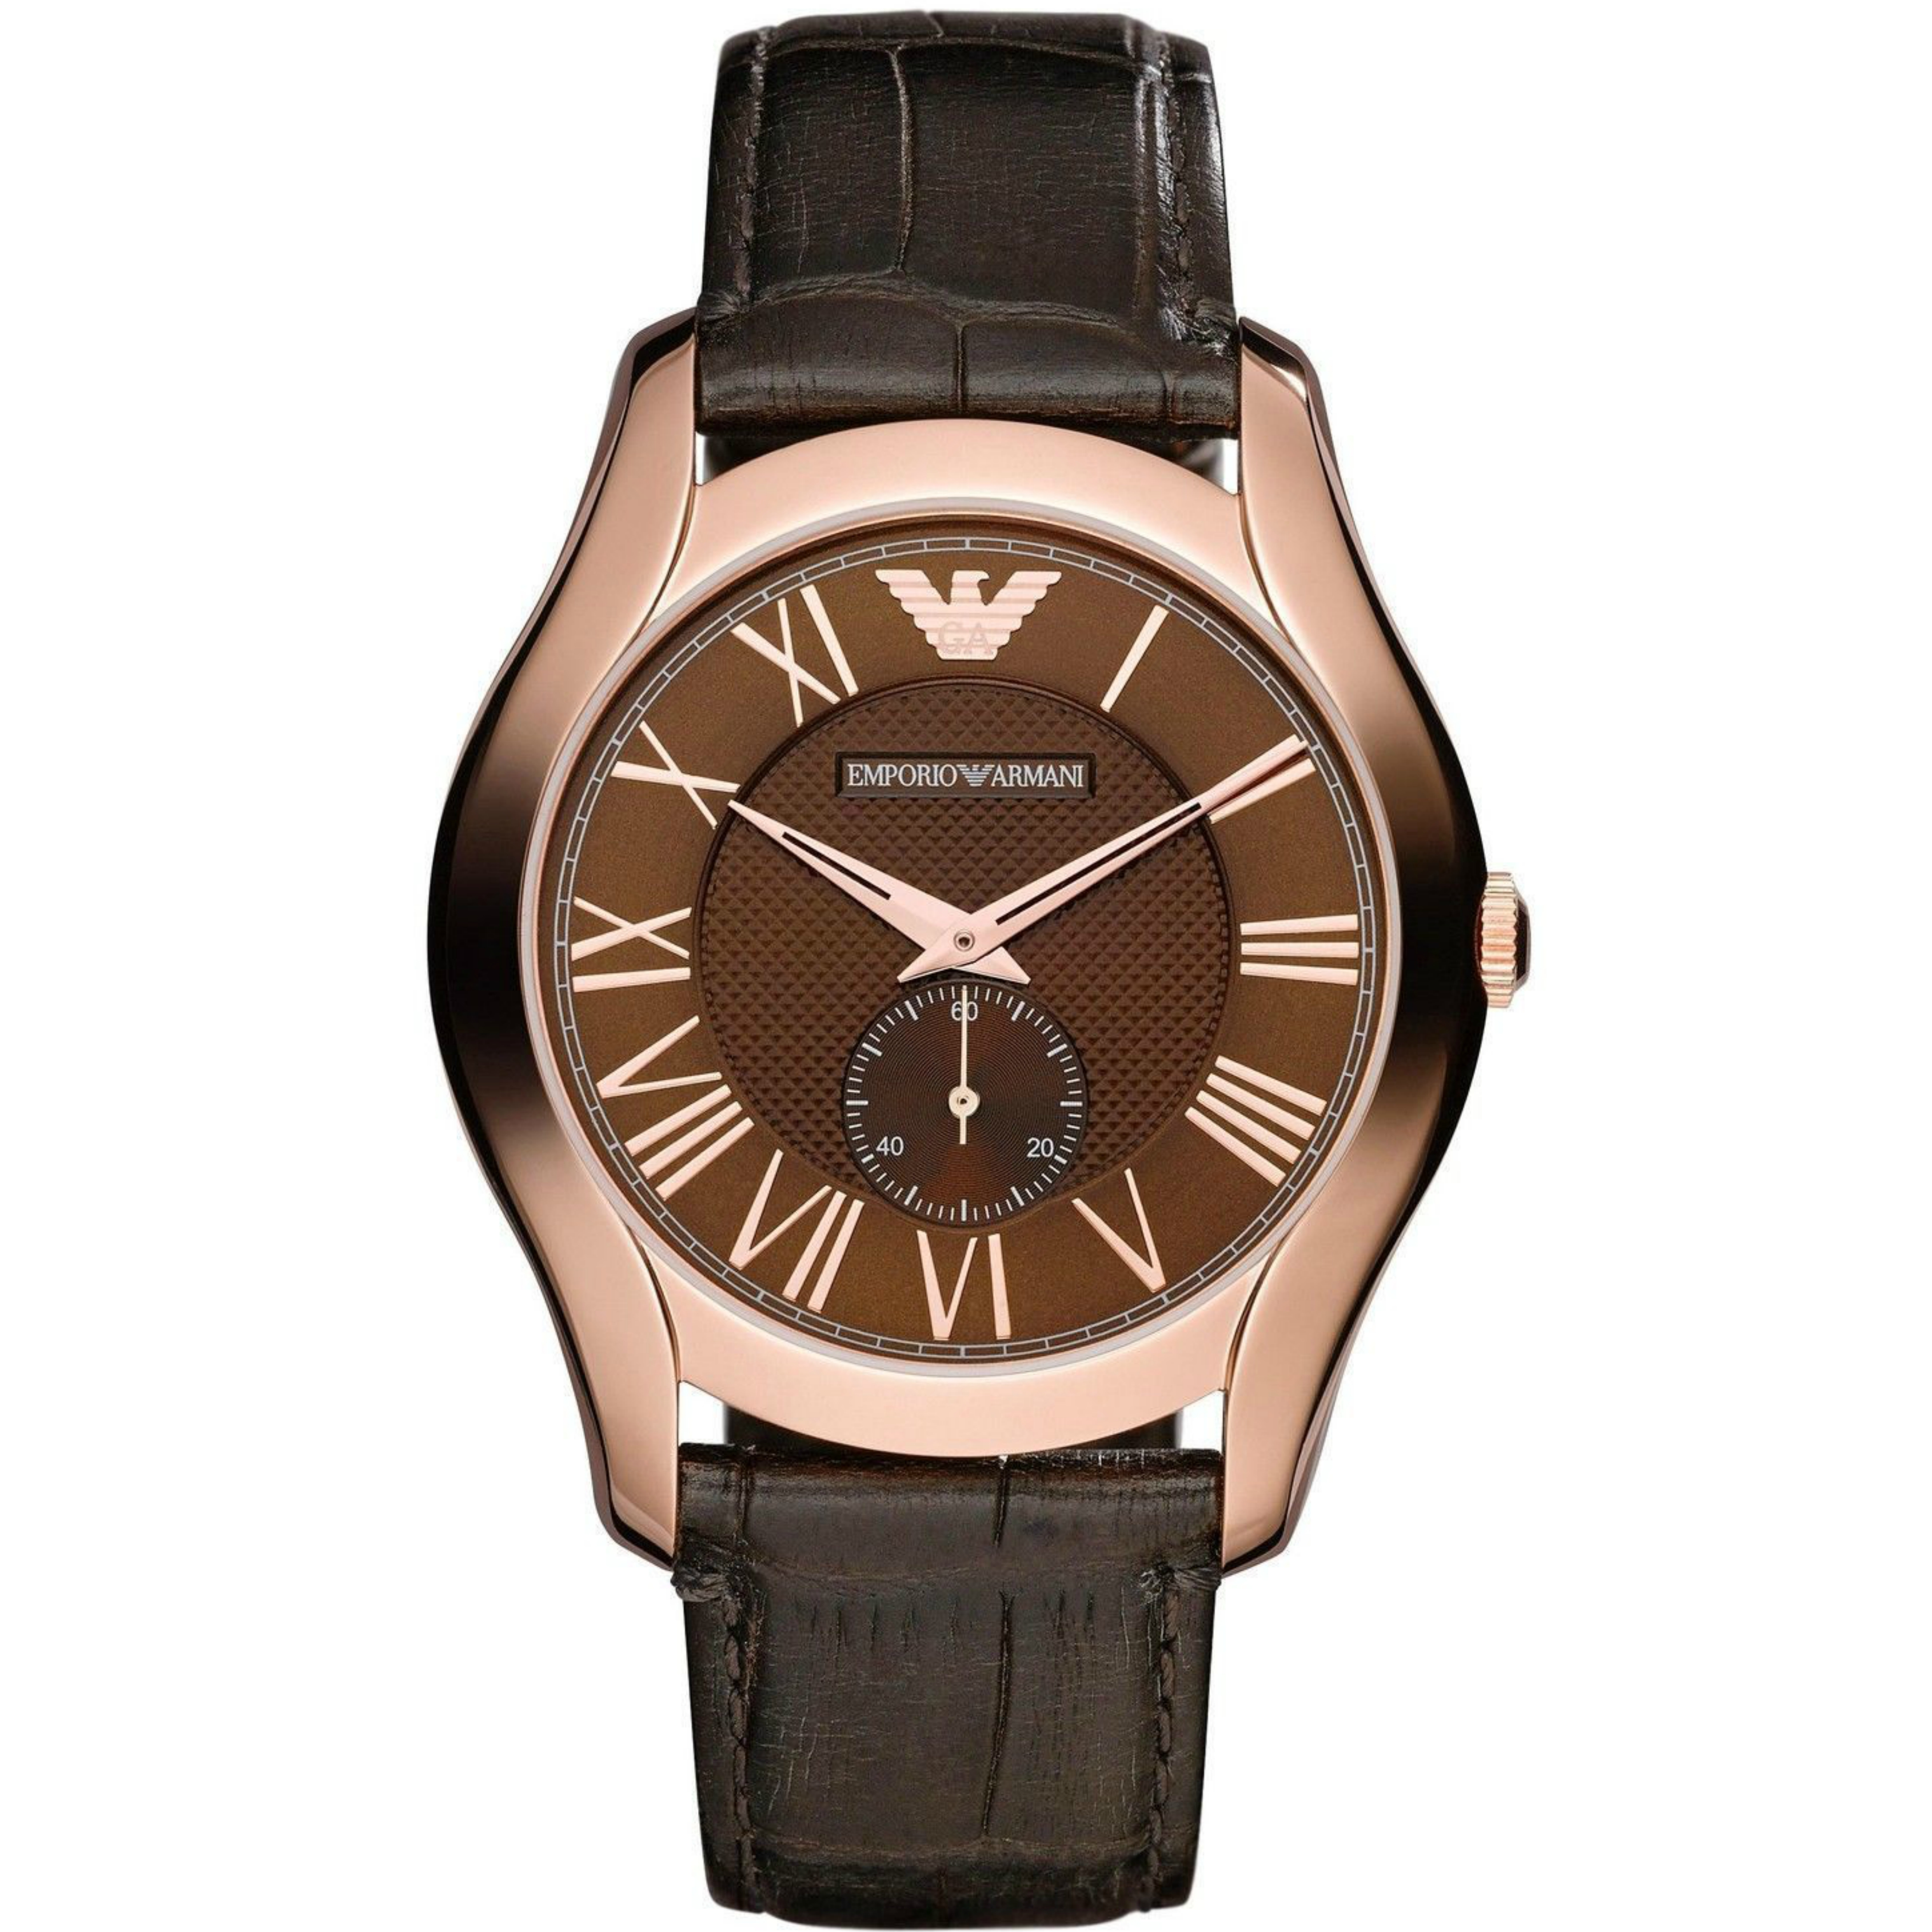 b413b9f37816c Details about Emporio Armani Classic Men s Watch│Bronze Dial│Brown Croco  Leather Strap│AR1705